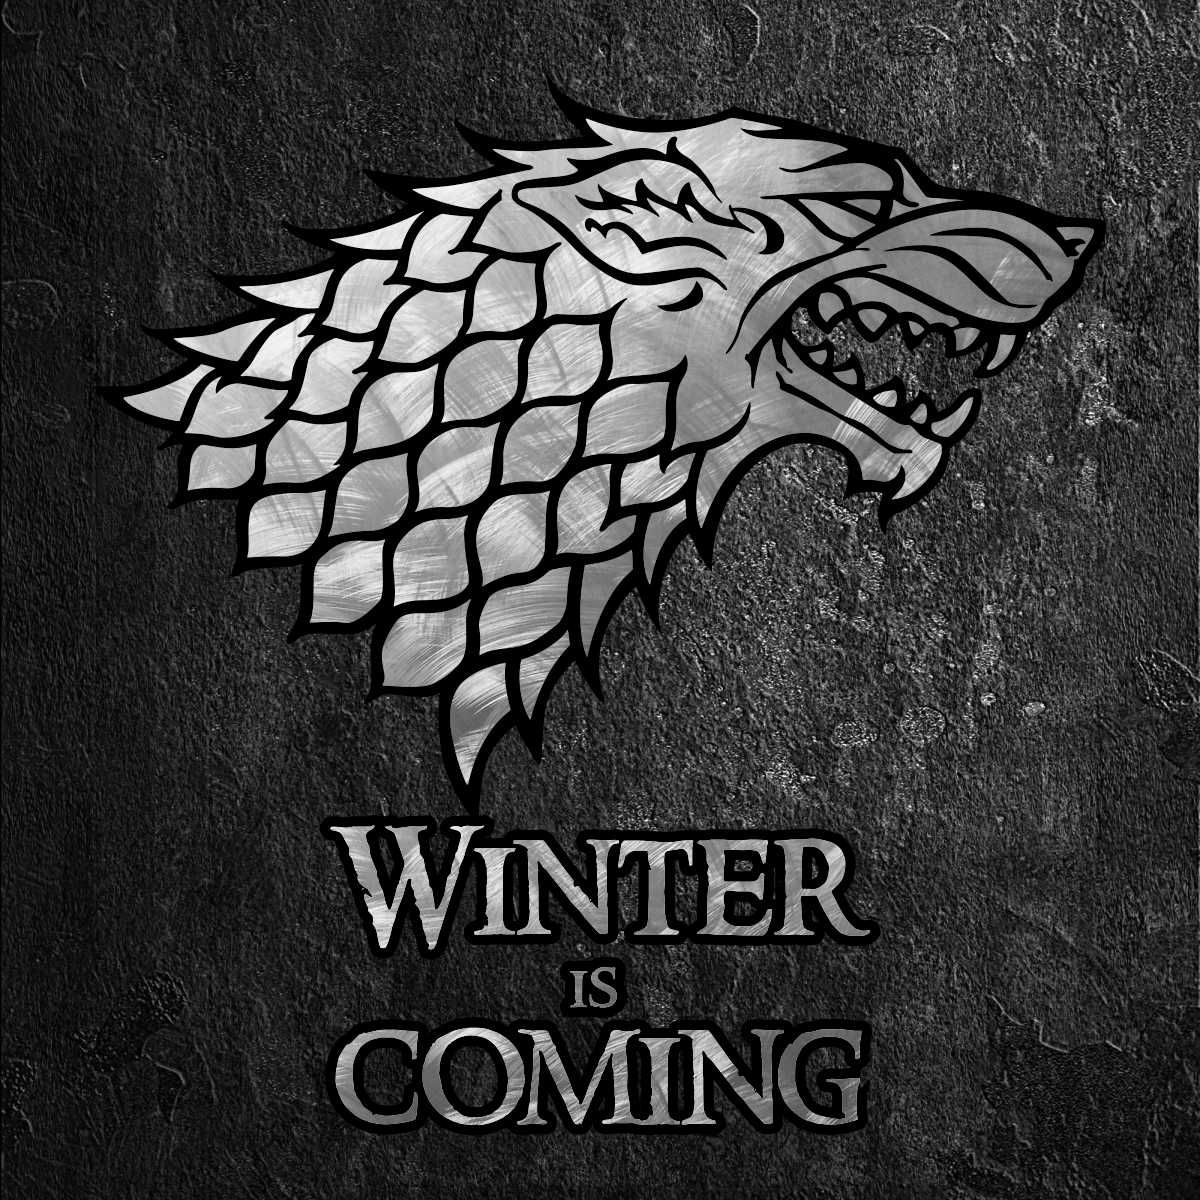 Game Of Thrones Winter Is Coming House Stark Sigil In Scratched Metal On Black Stone House Stark Sigil Stark Sigil Winter Is Coming